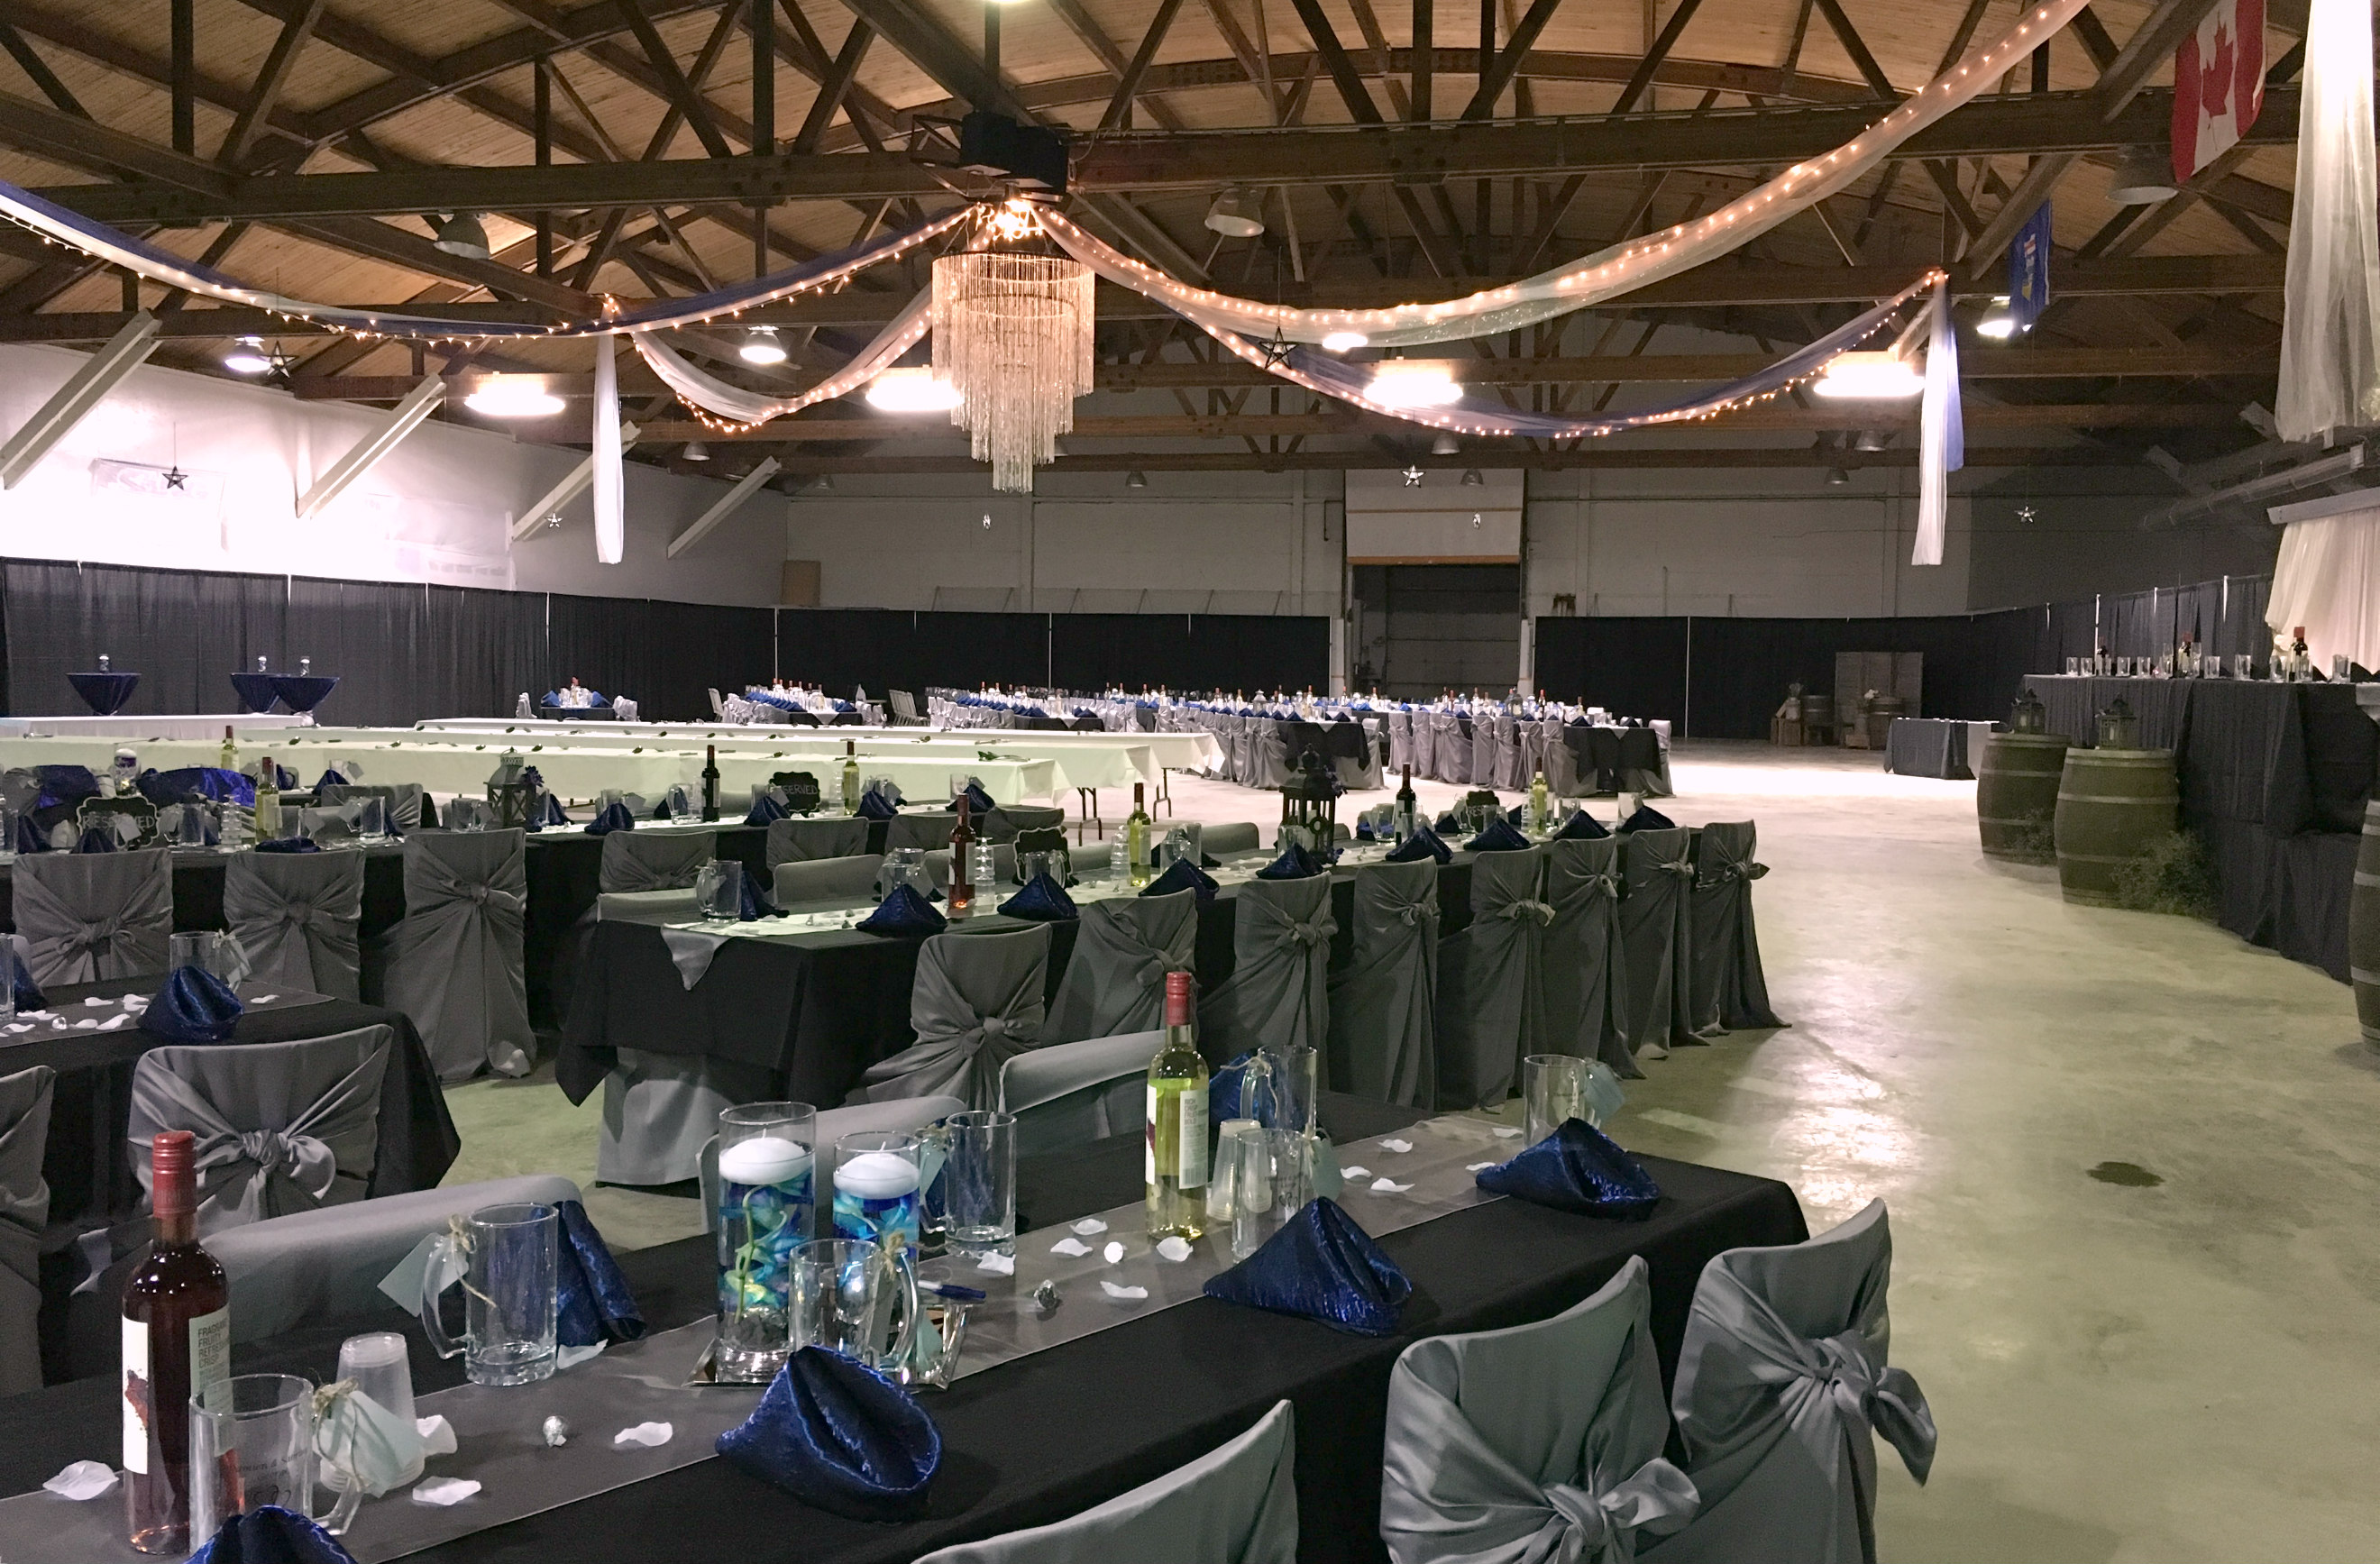 The reception took place at the Rich Valley Agriplex. What a magnificent way to transform a hockey arena!